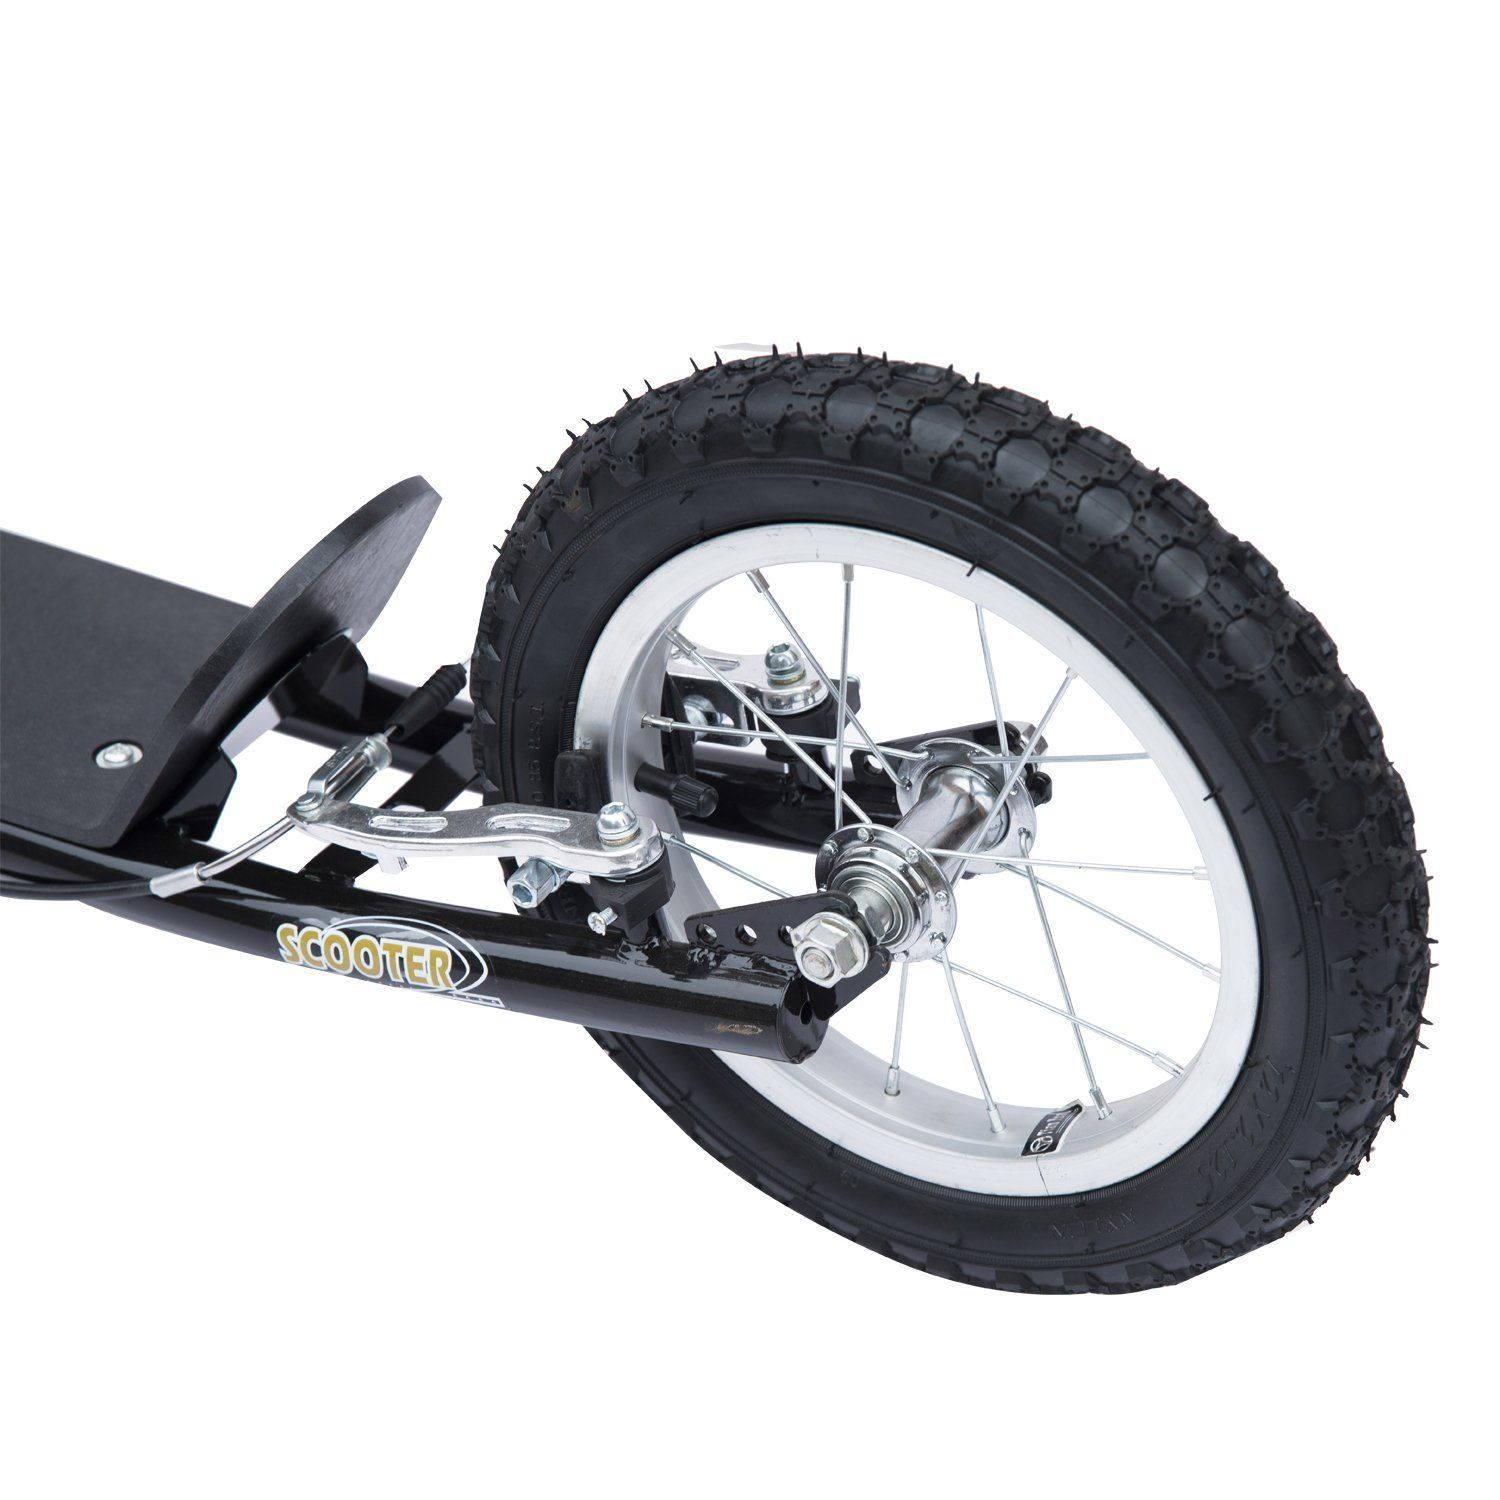 Adjustable-Teen-Kick-Scooter-Kids-Ride-On-Stunt-Street-Bike-16-034-Tire thumbnail 7